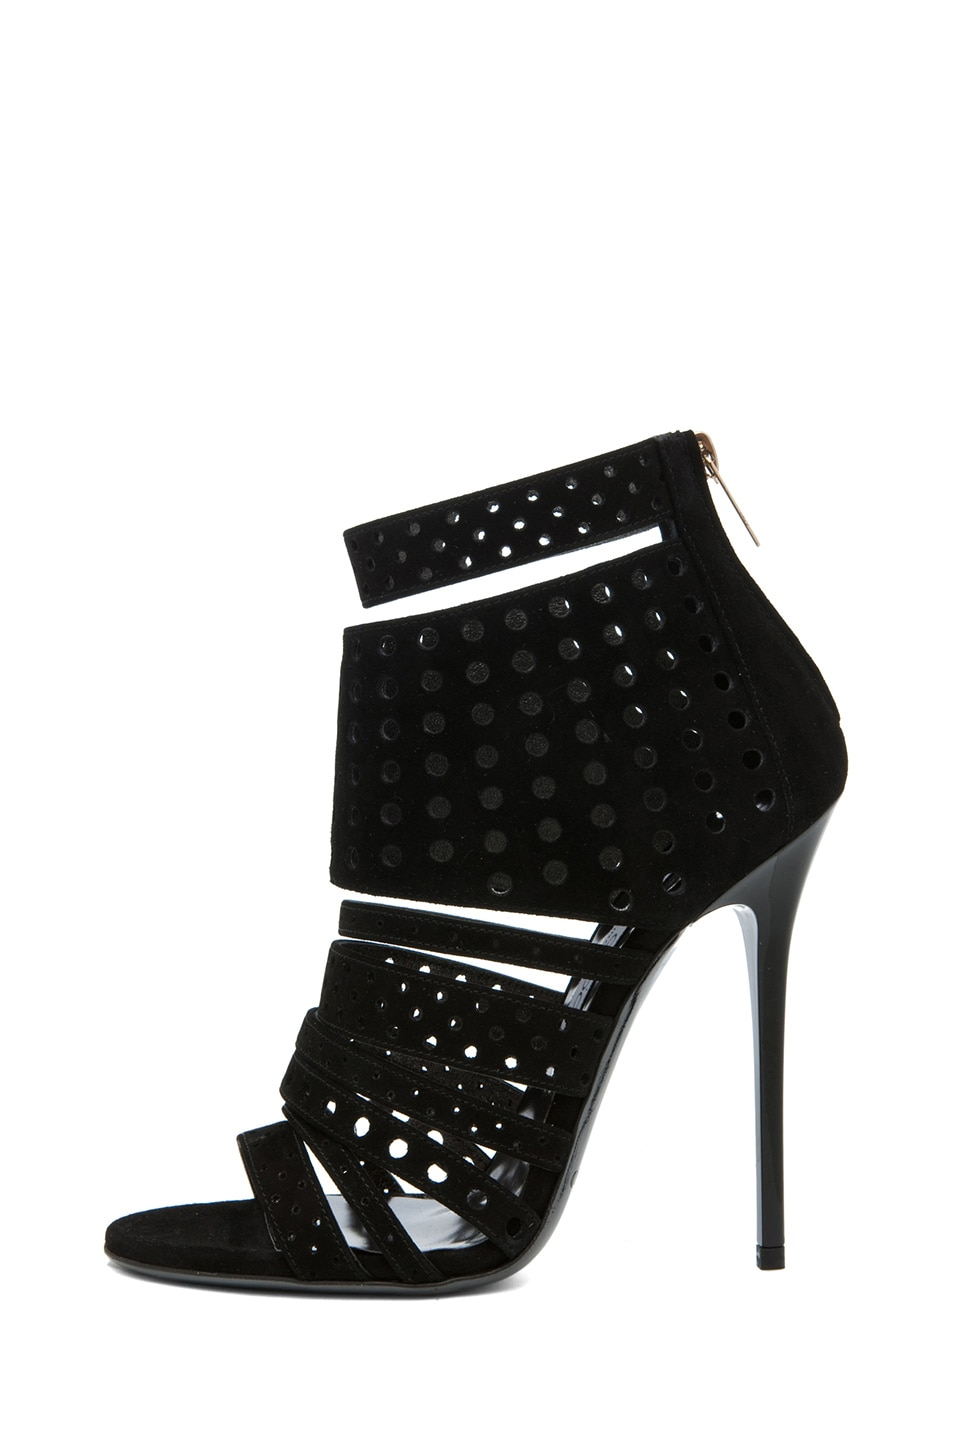 Image 1 of Jimmy Choo Malika Suede Perforated Bootie in Black